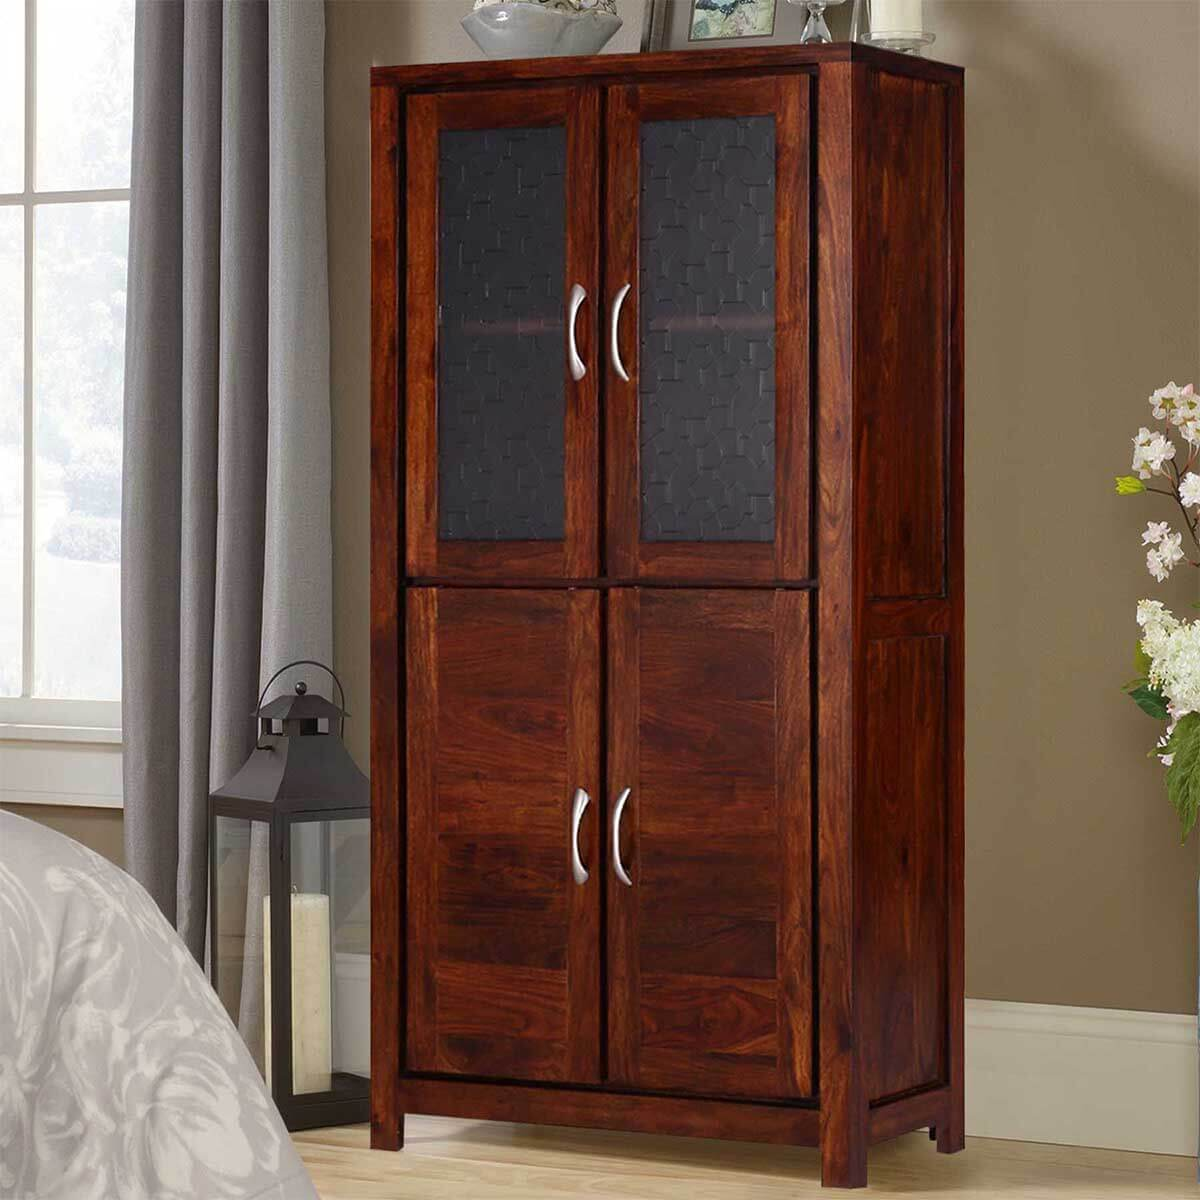 Allerton Rustic Solid Wood Display Cabinet Armoire With Shelves